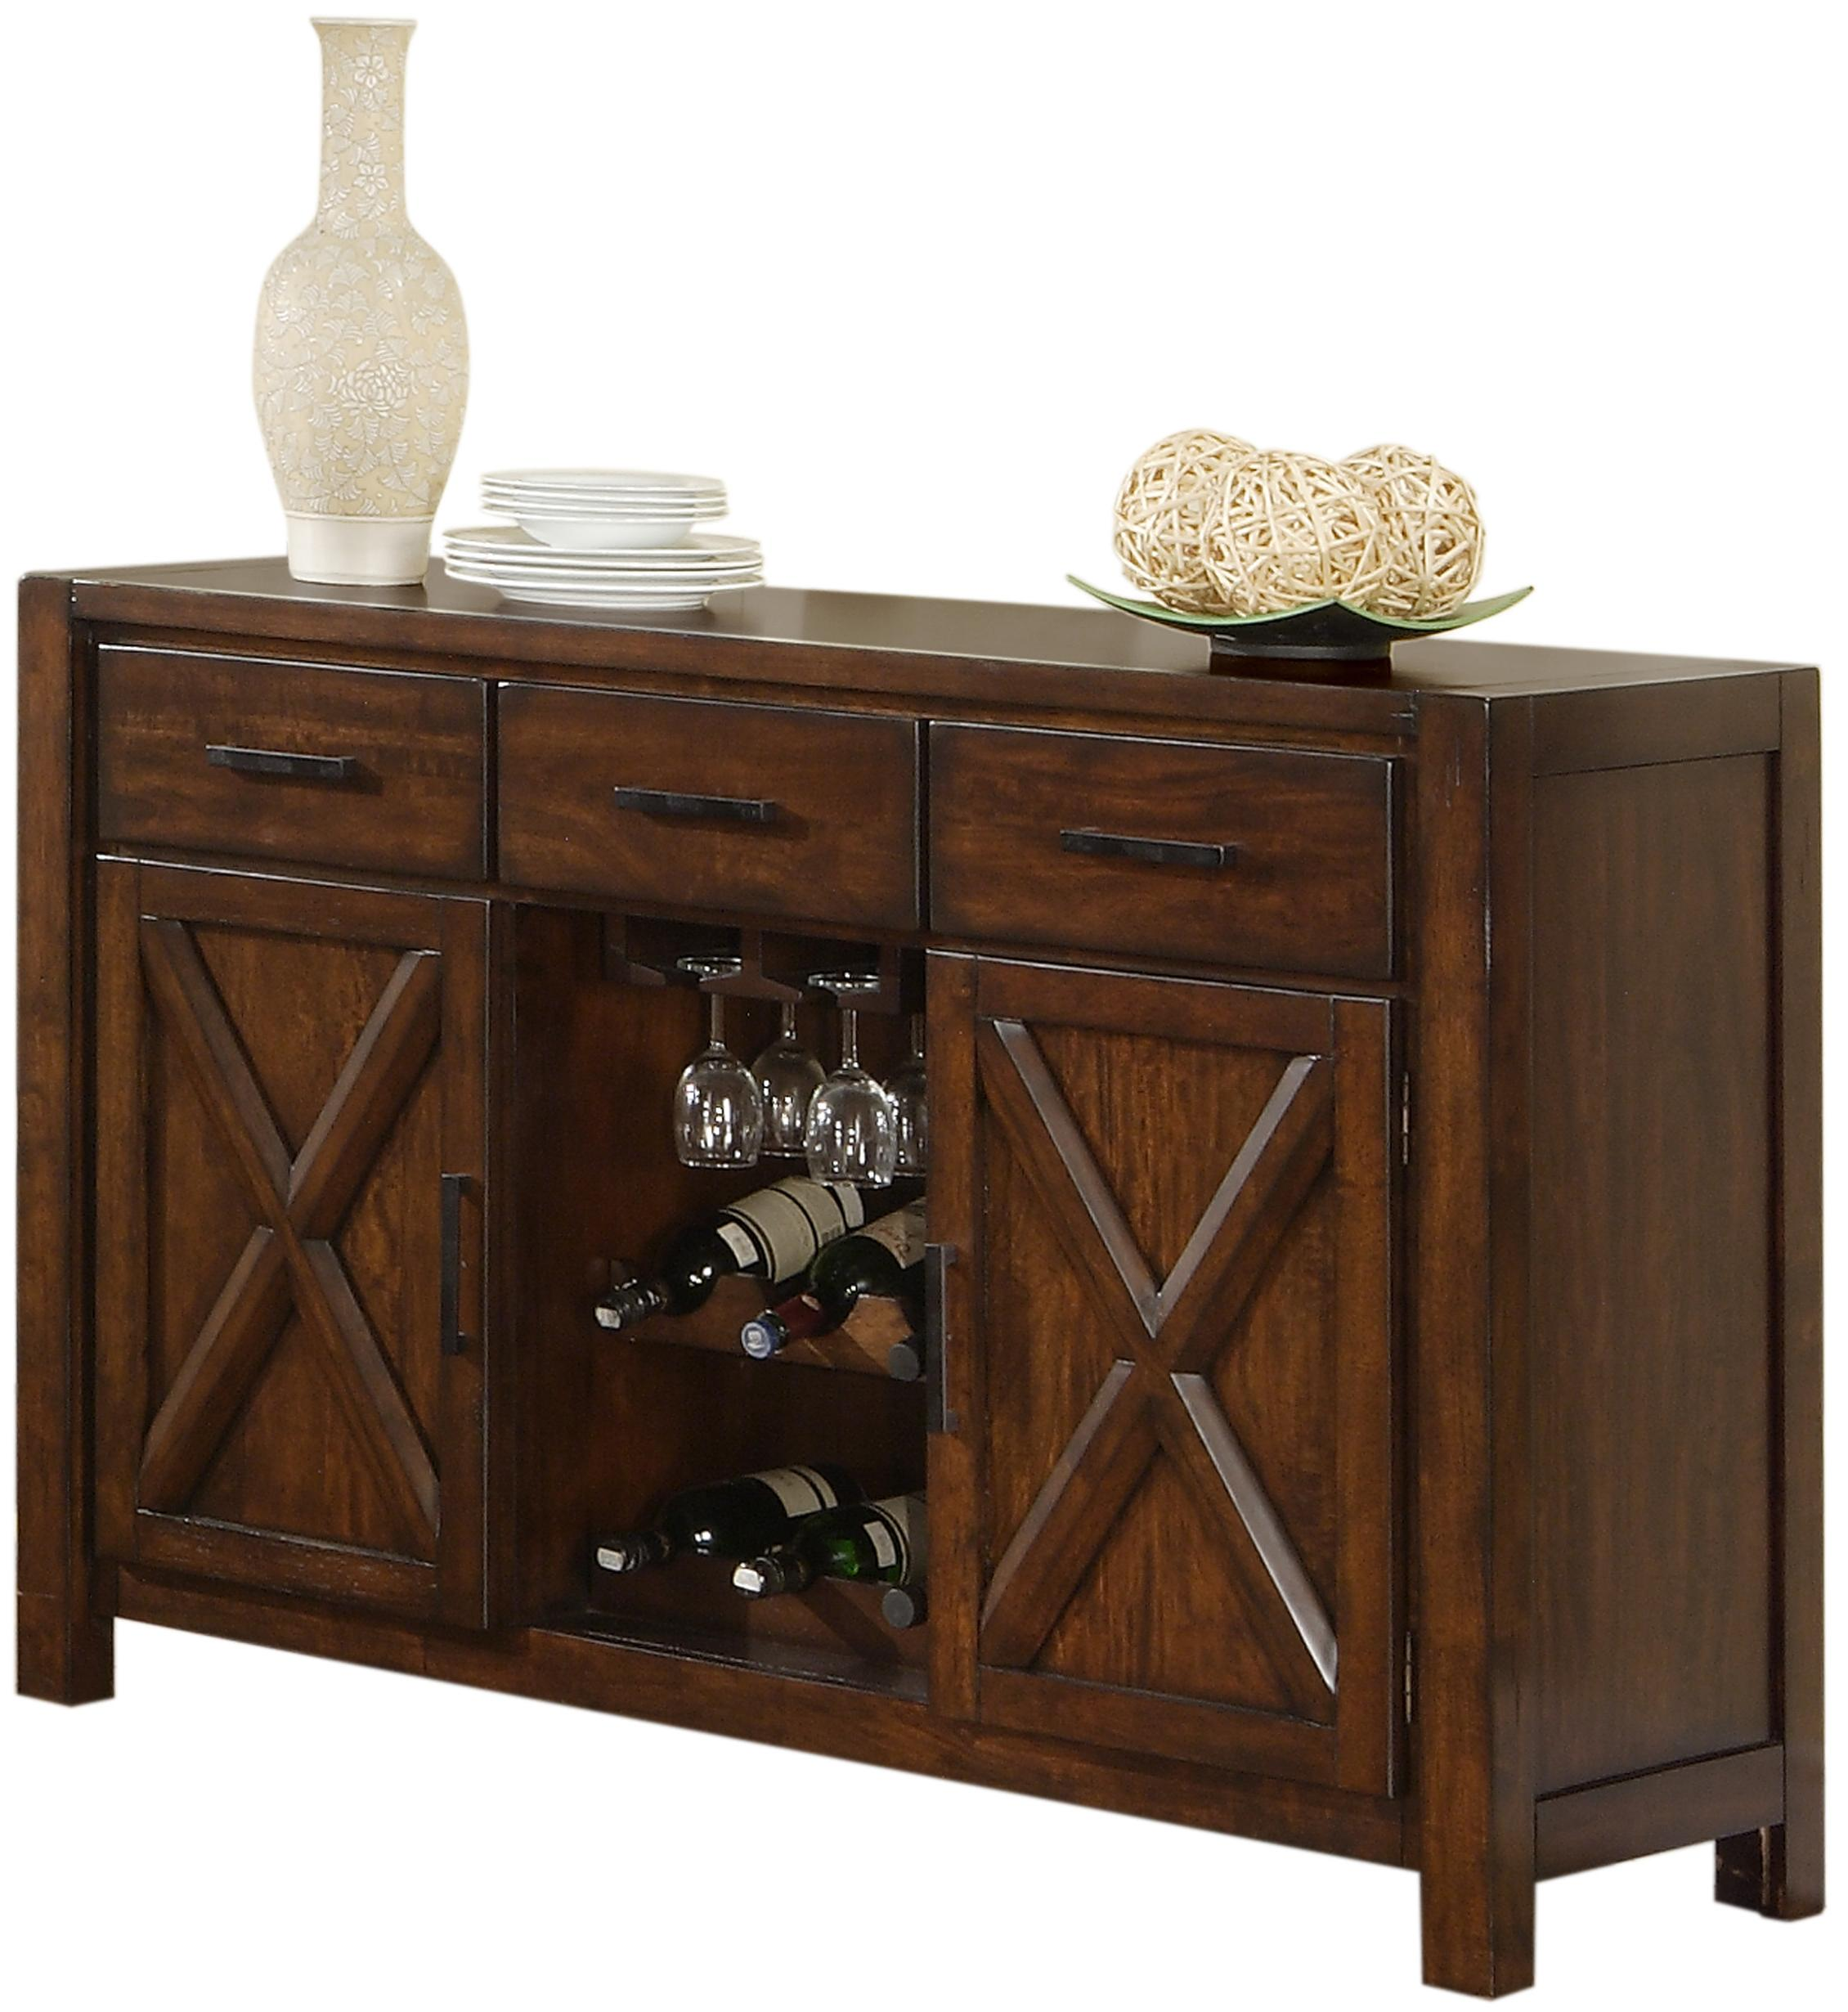 Holland House Lakeshore 1278 5418 Dining Sideboard W Wine